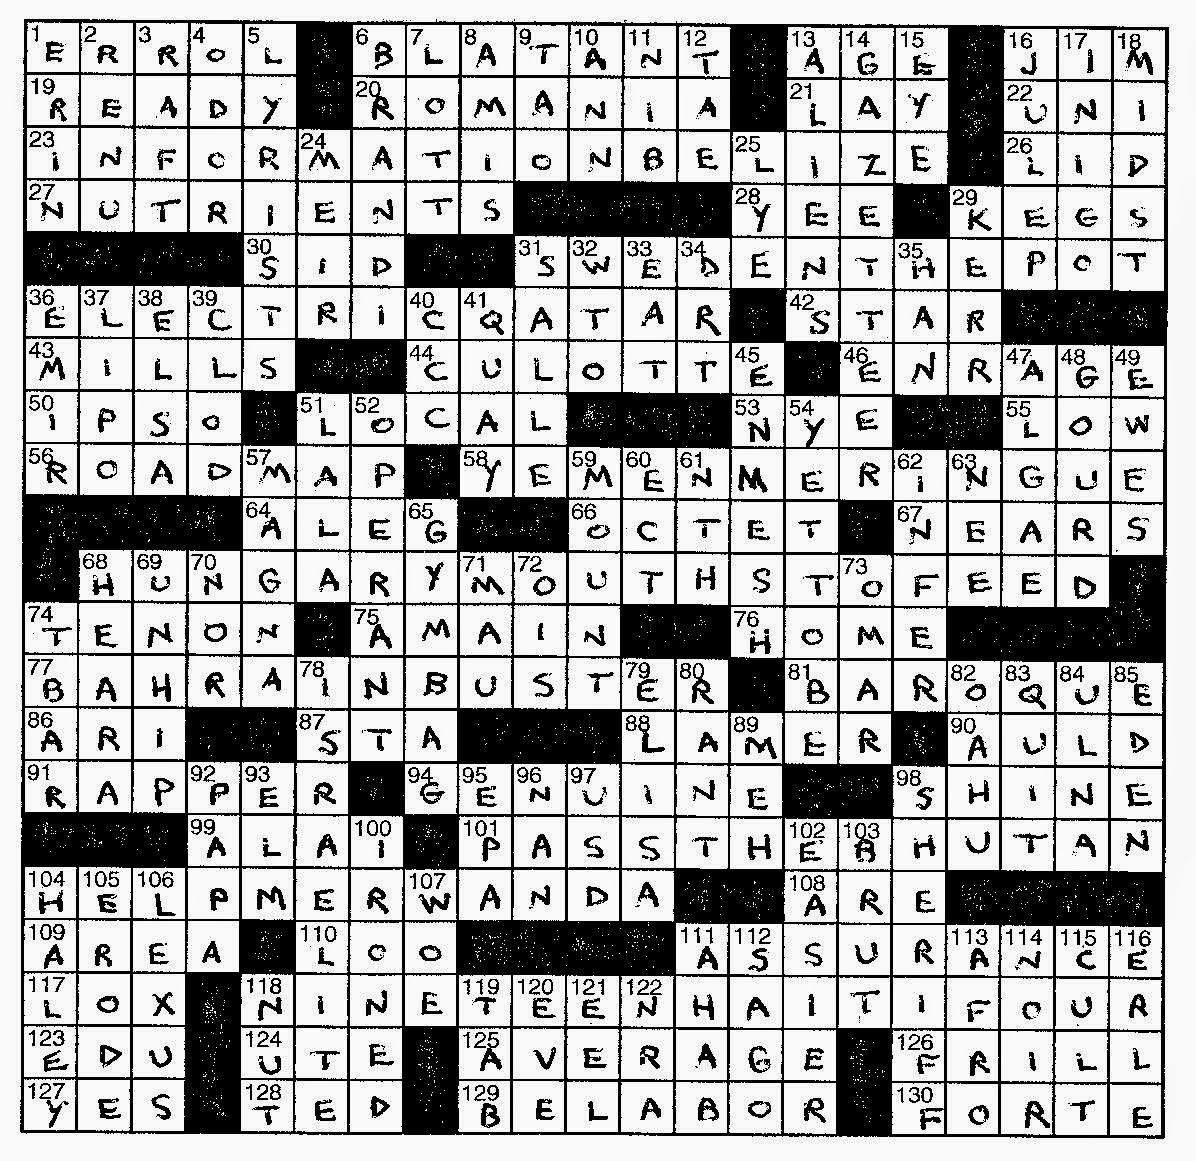 Lem's Levity: Port Cities - Printable Crossword Puzzles By Frank Longo